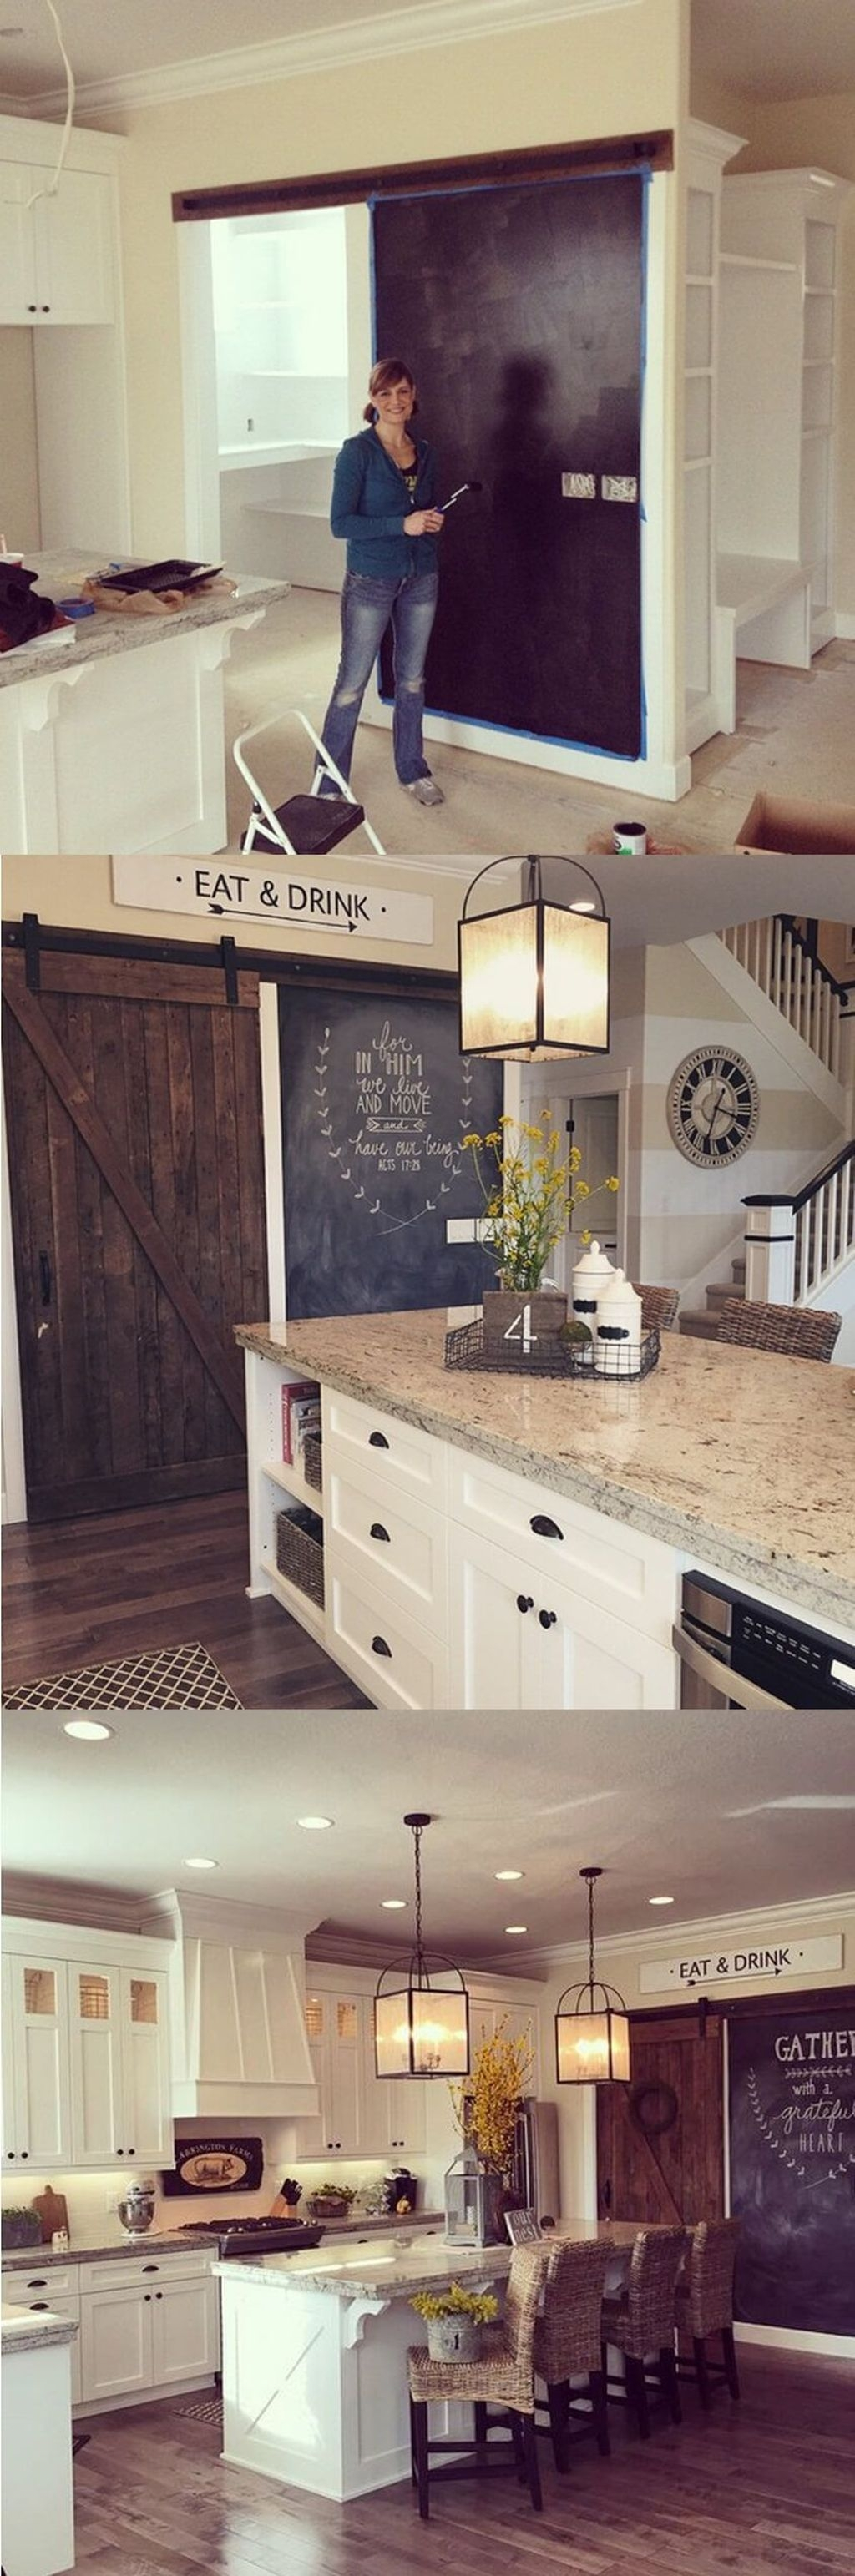 Stylish Rustic Kitchen Apartment Decoration Ideas 36